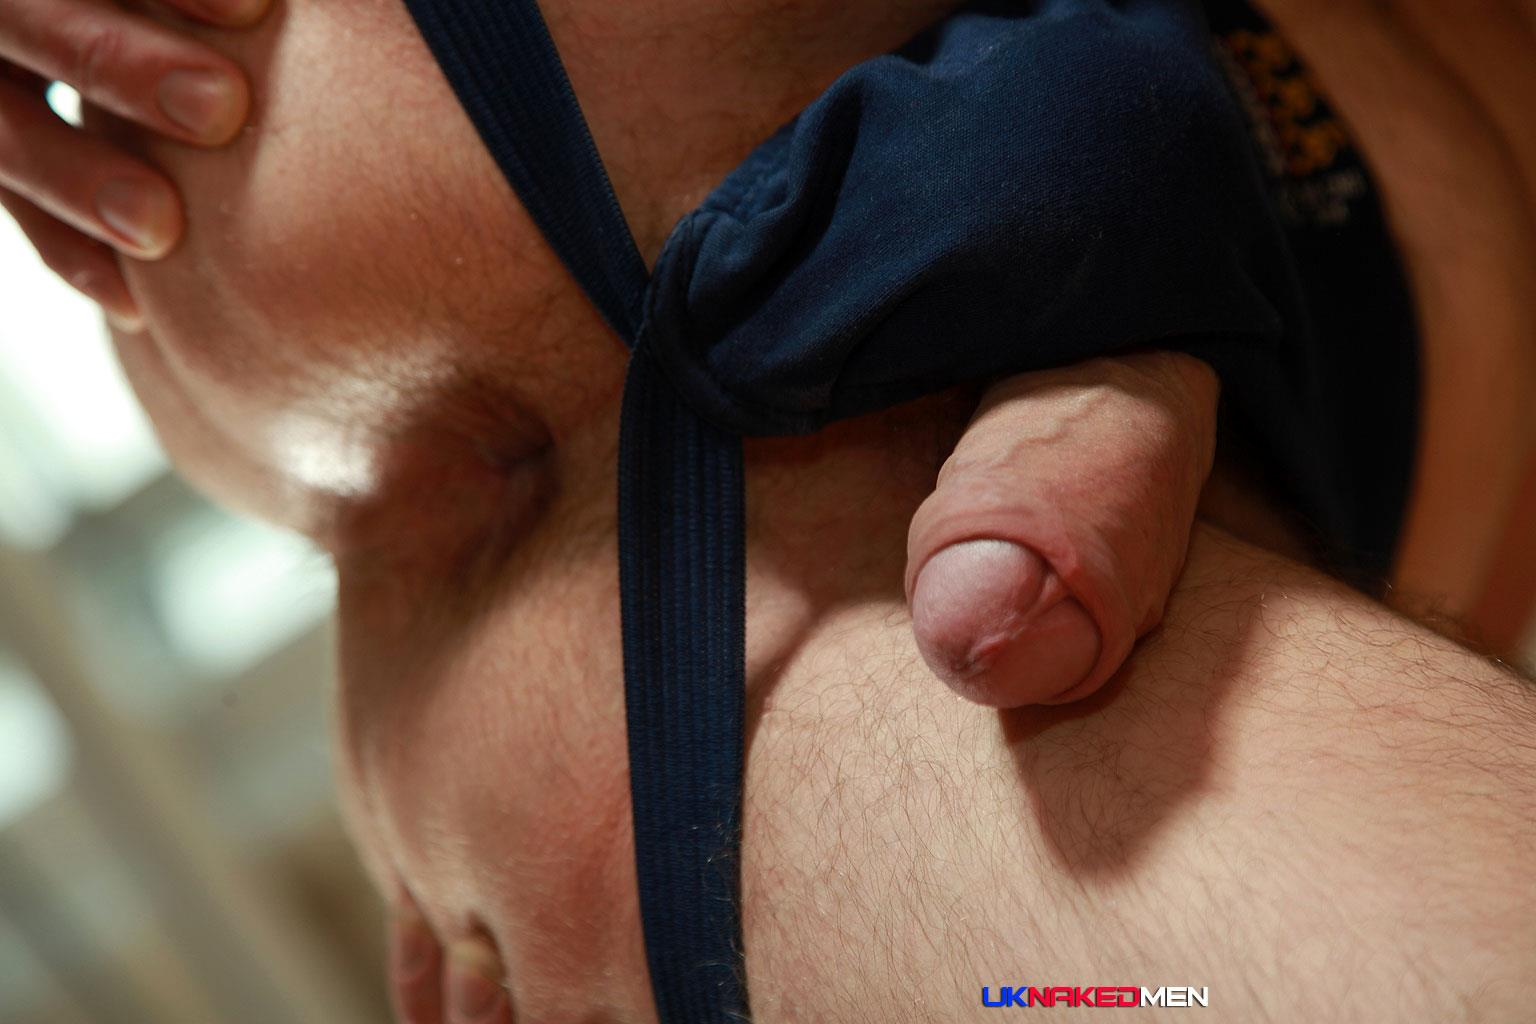 UK-Naked-Men-Tom-Long-Bearded-Guy-With-A-Big-Uncut-Cock-Jerk-Off-Amateur-Gay-Porn-14 Bearded Guy From England Jerking His Big Uncut Cock